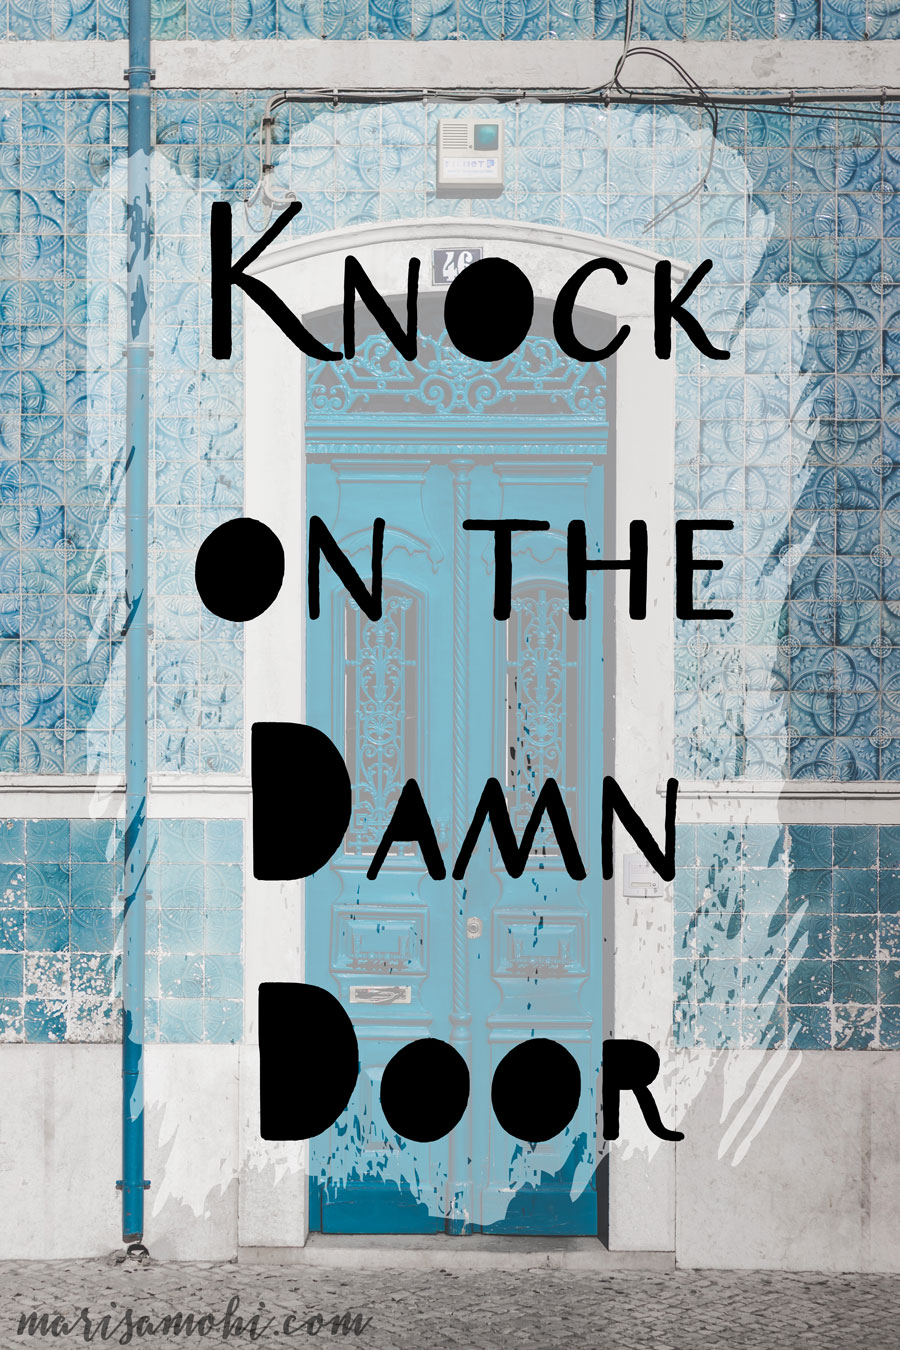 Knock on the damn door!